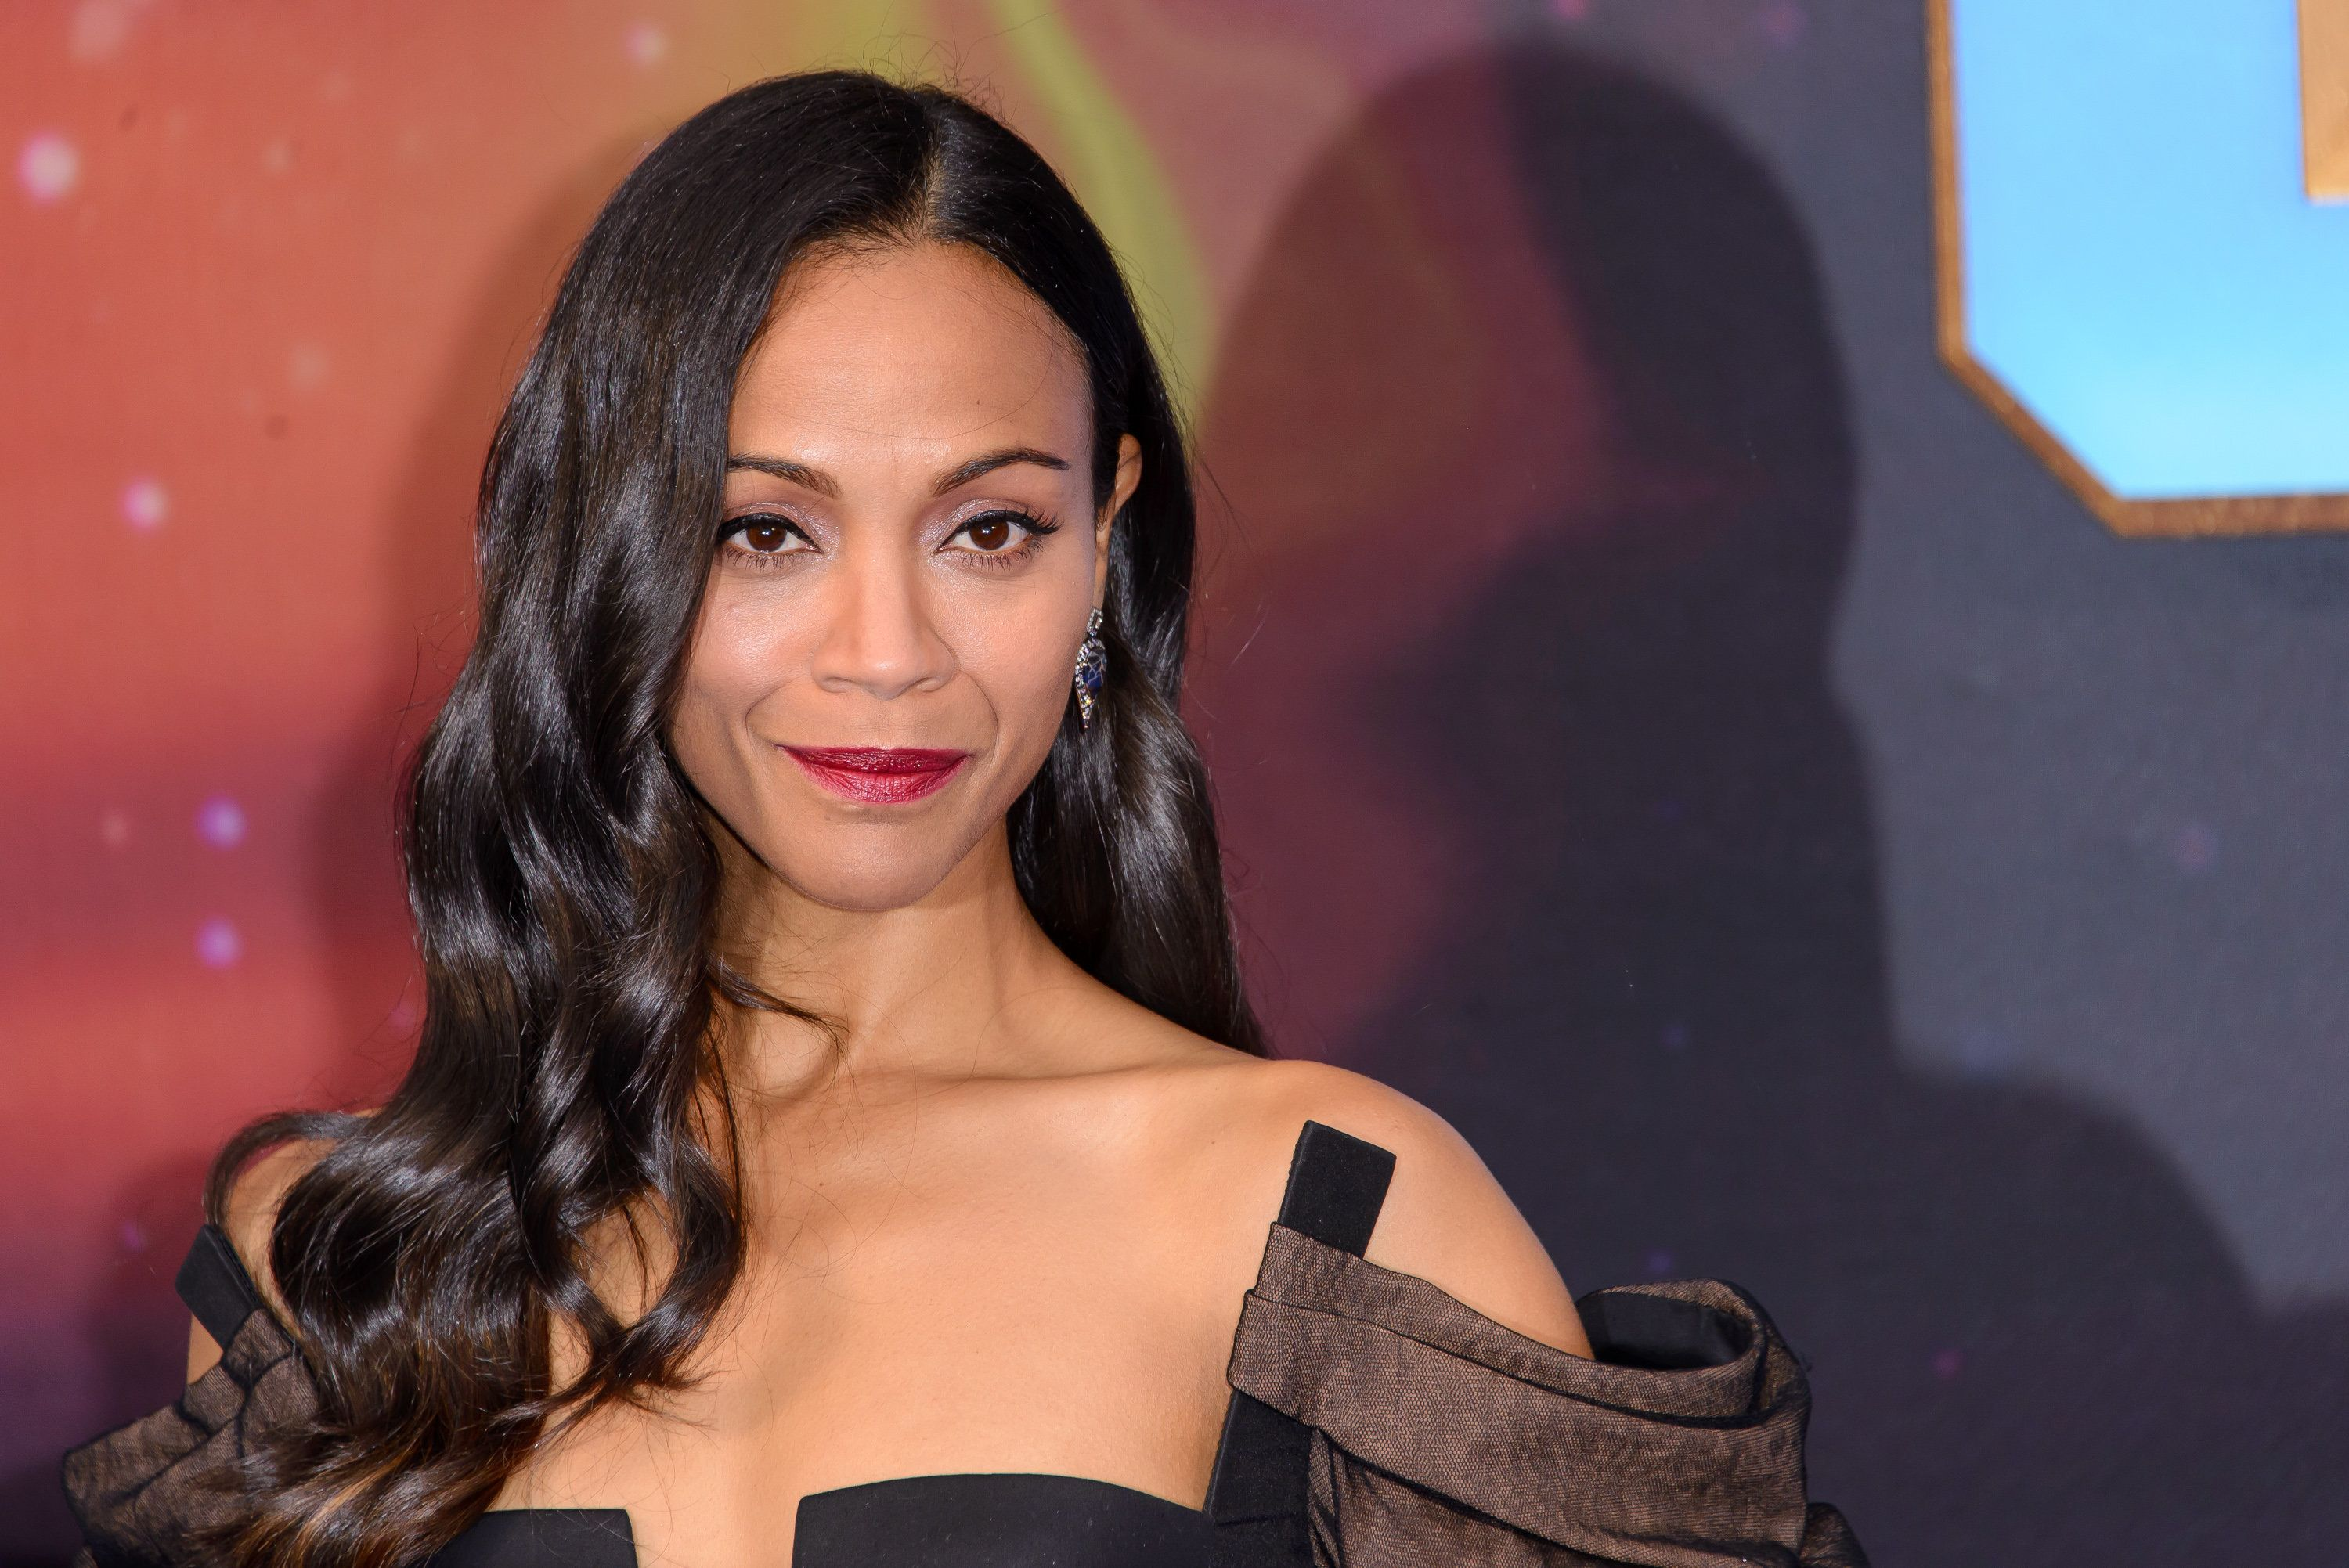 LONDON, ENGLAND - APRIL 24: Zoe Saldana attends the European Gala Screening of 'Guardians of the Galaxy Vol. 2' at Eventim Apollo on April 24, 2017 in London, United Kingdom. (Photo by Joe Maher/FilmMagic)